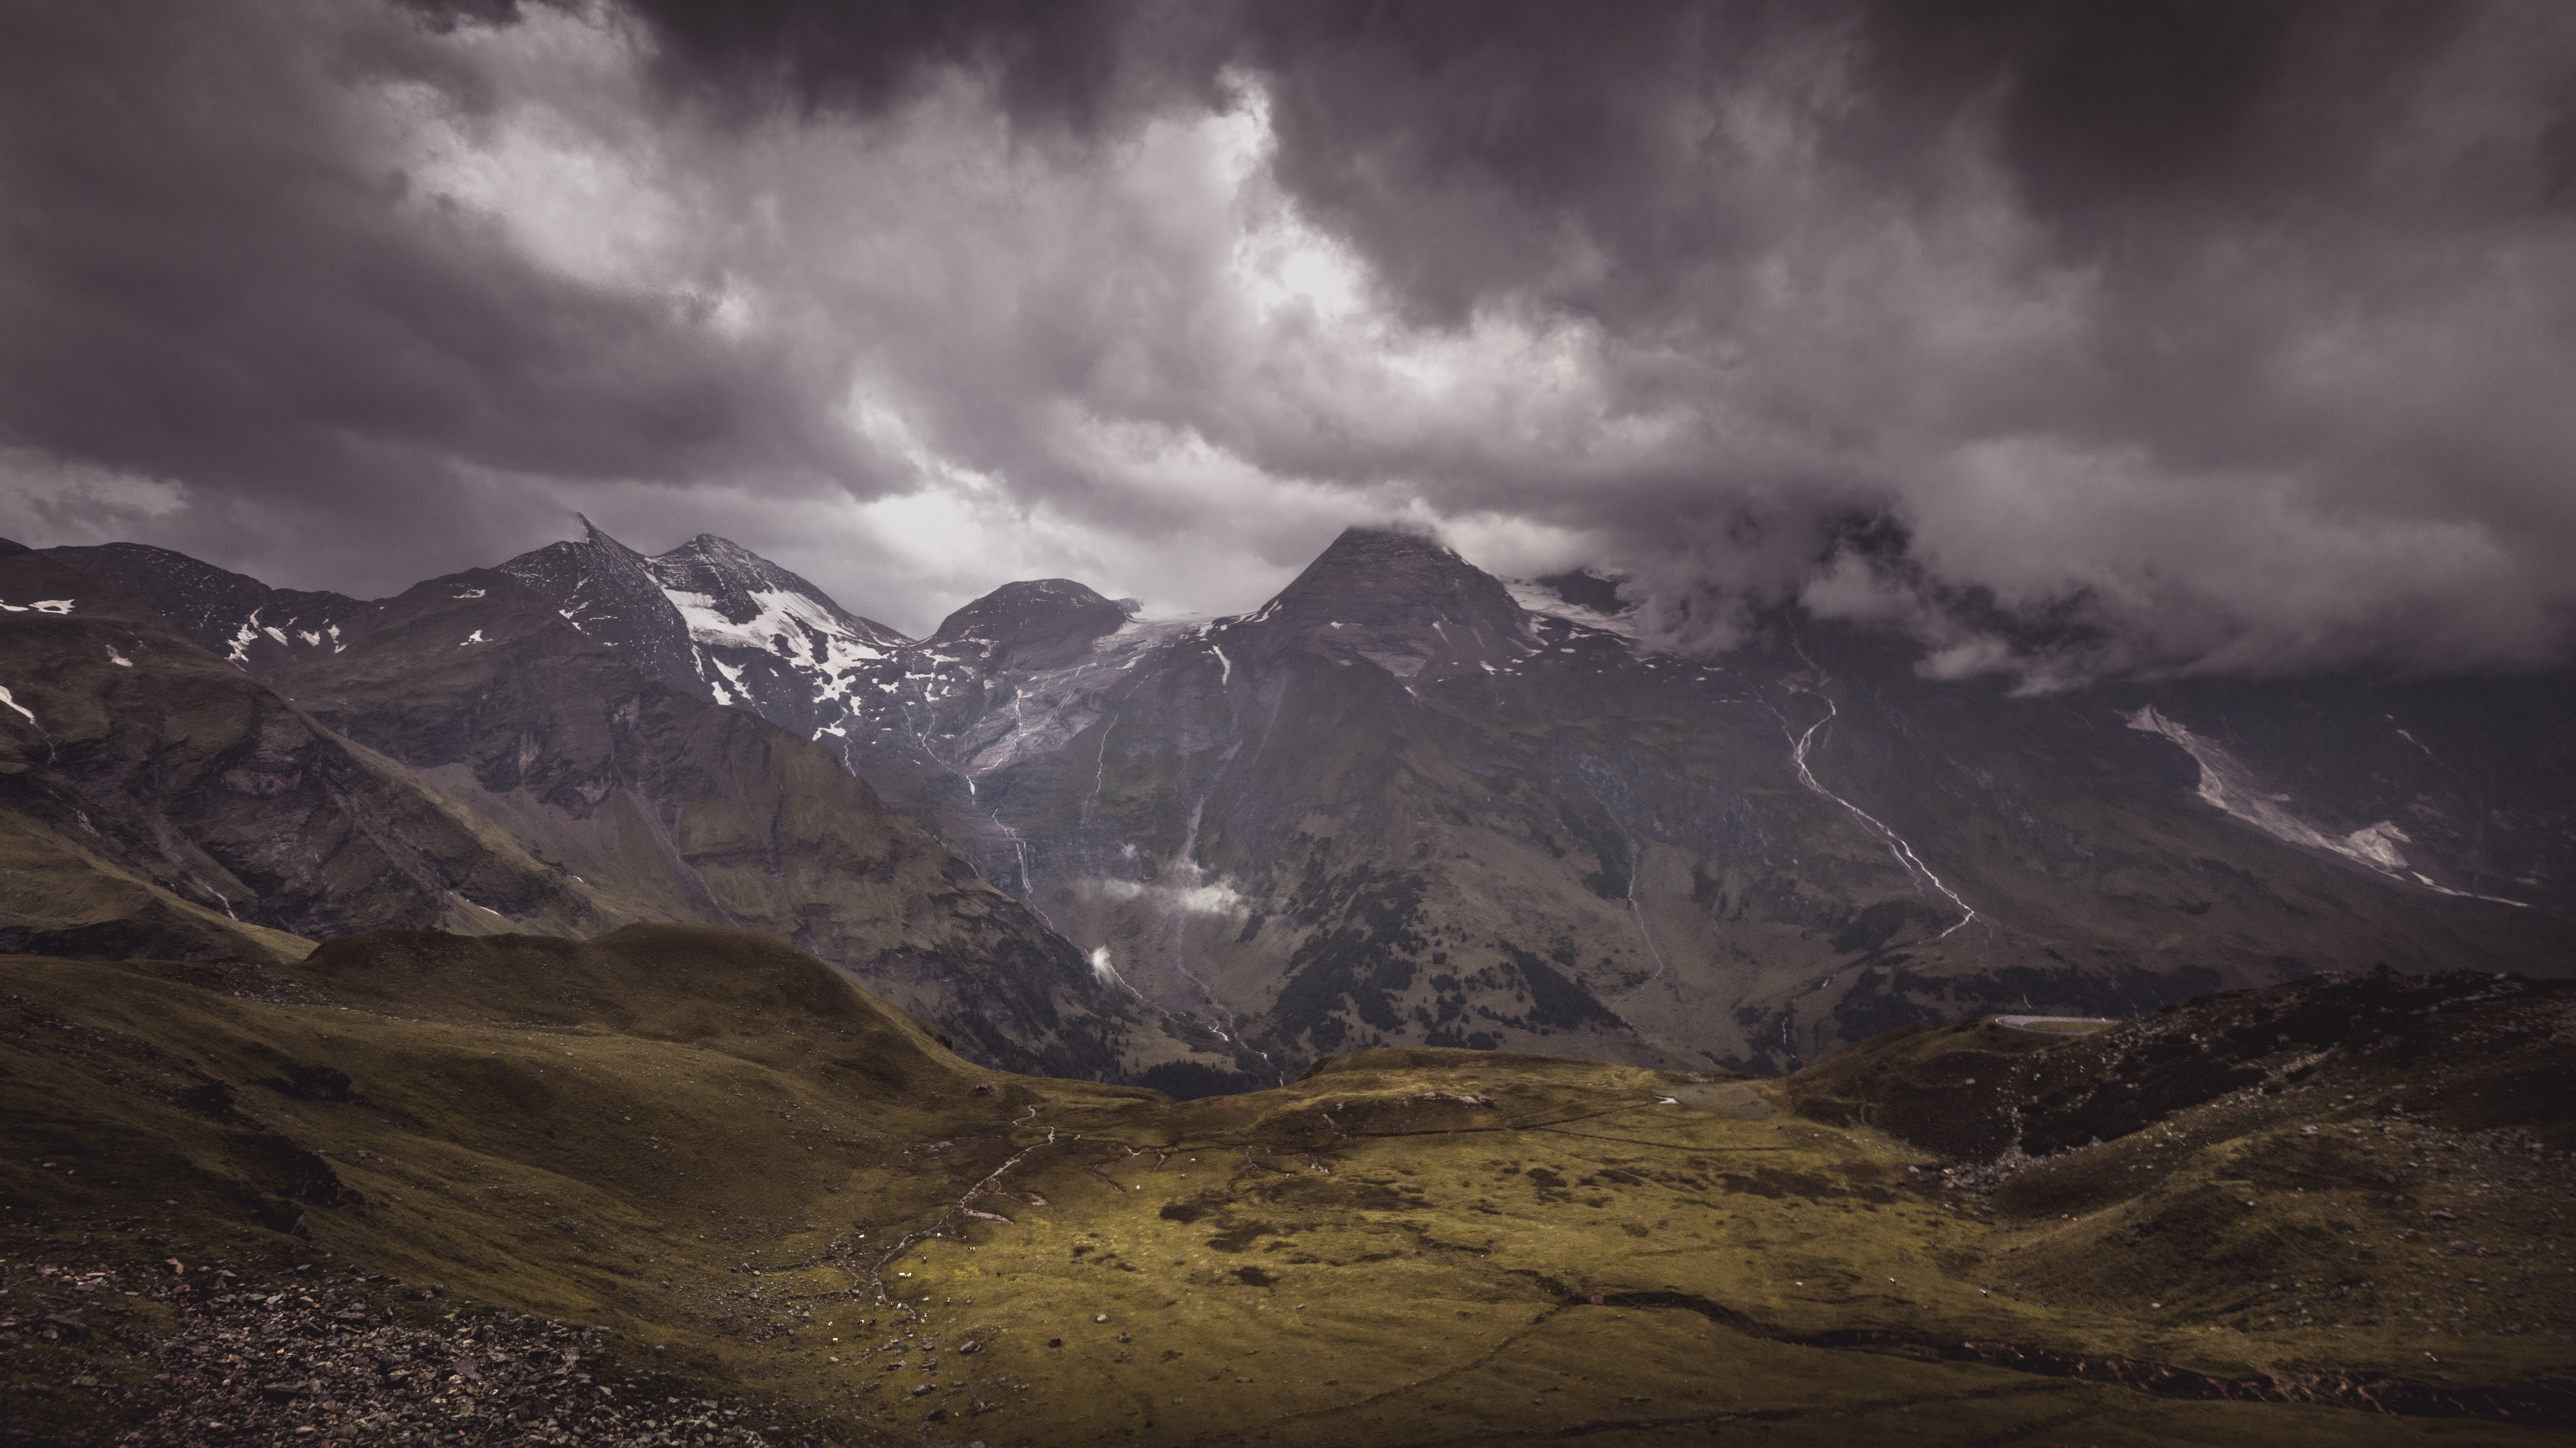 A snow-topped mountain massif under dense clouds